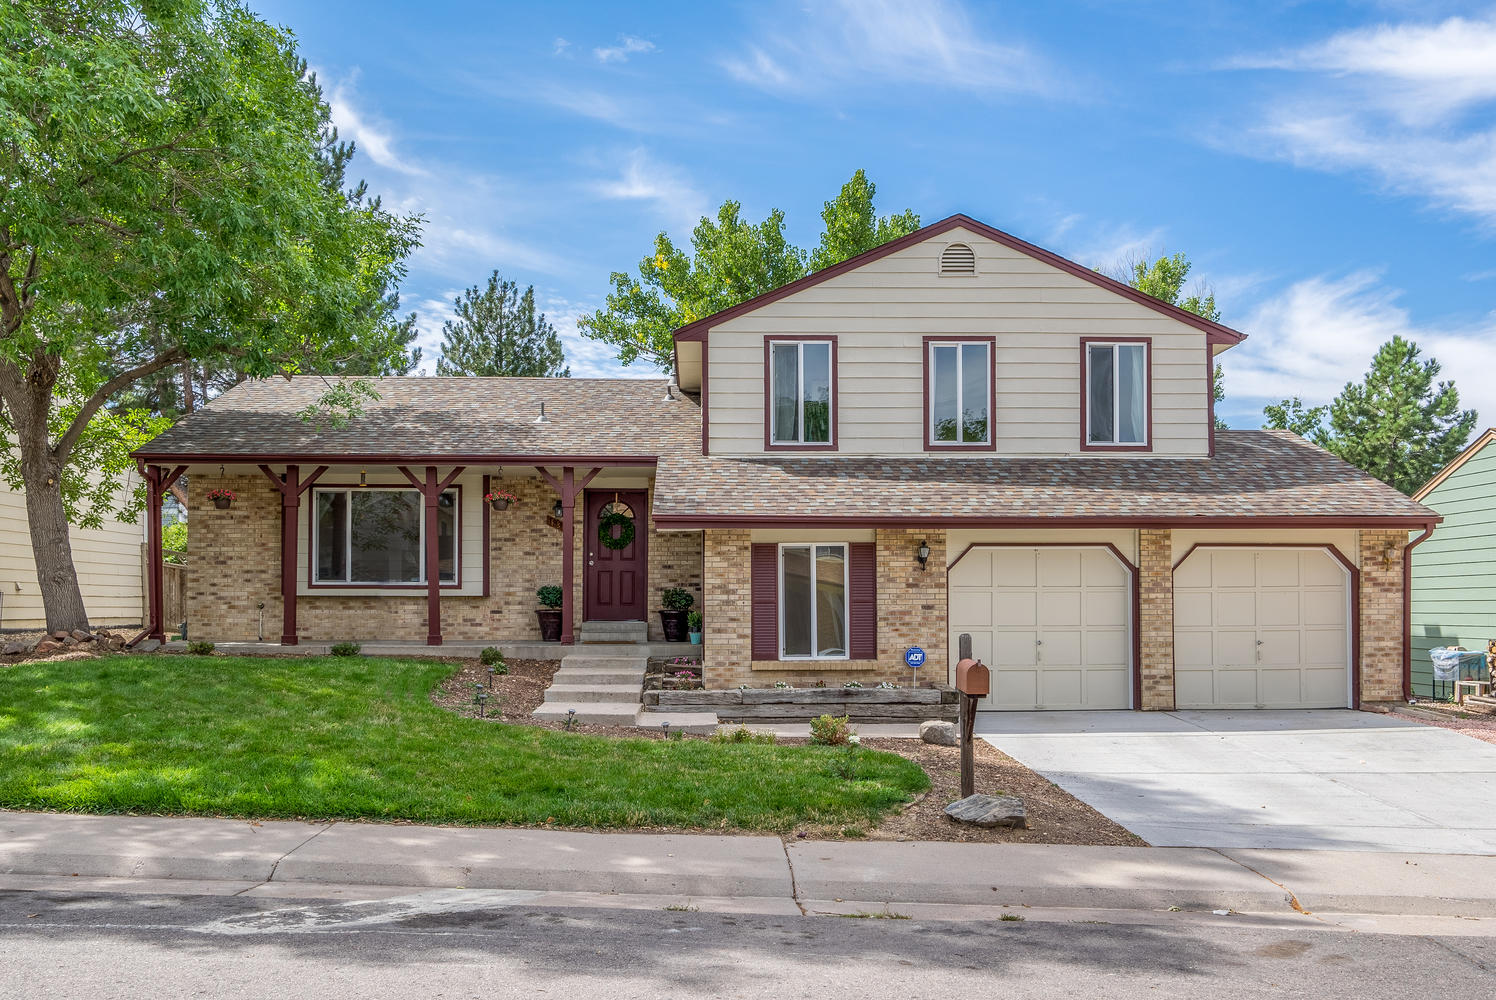 18344 E Arkansas Ave, Aurora, CO 80017